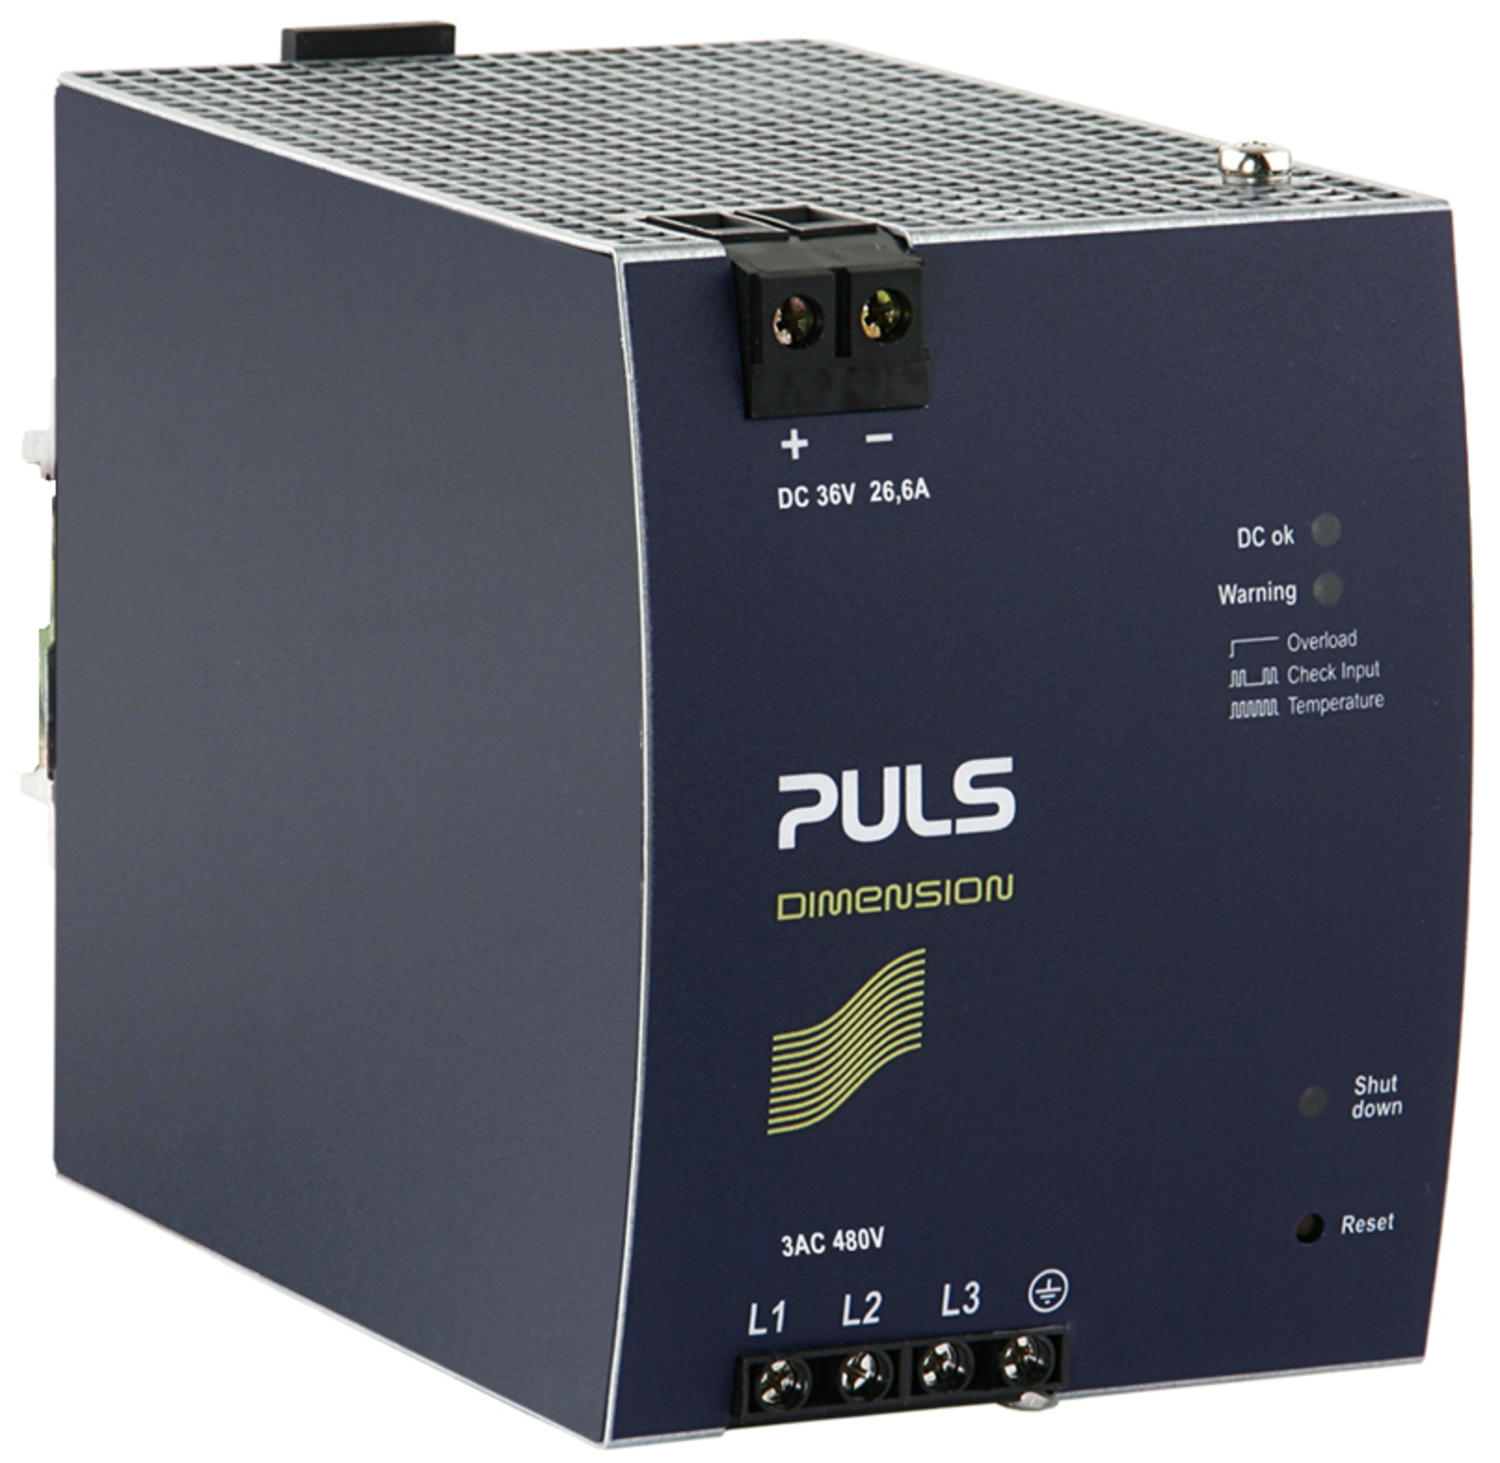 Power supply 3-phase, 36 V DC Dimension X Series